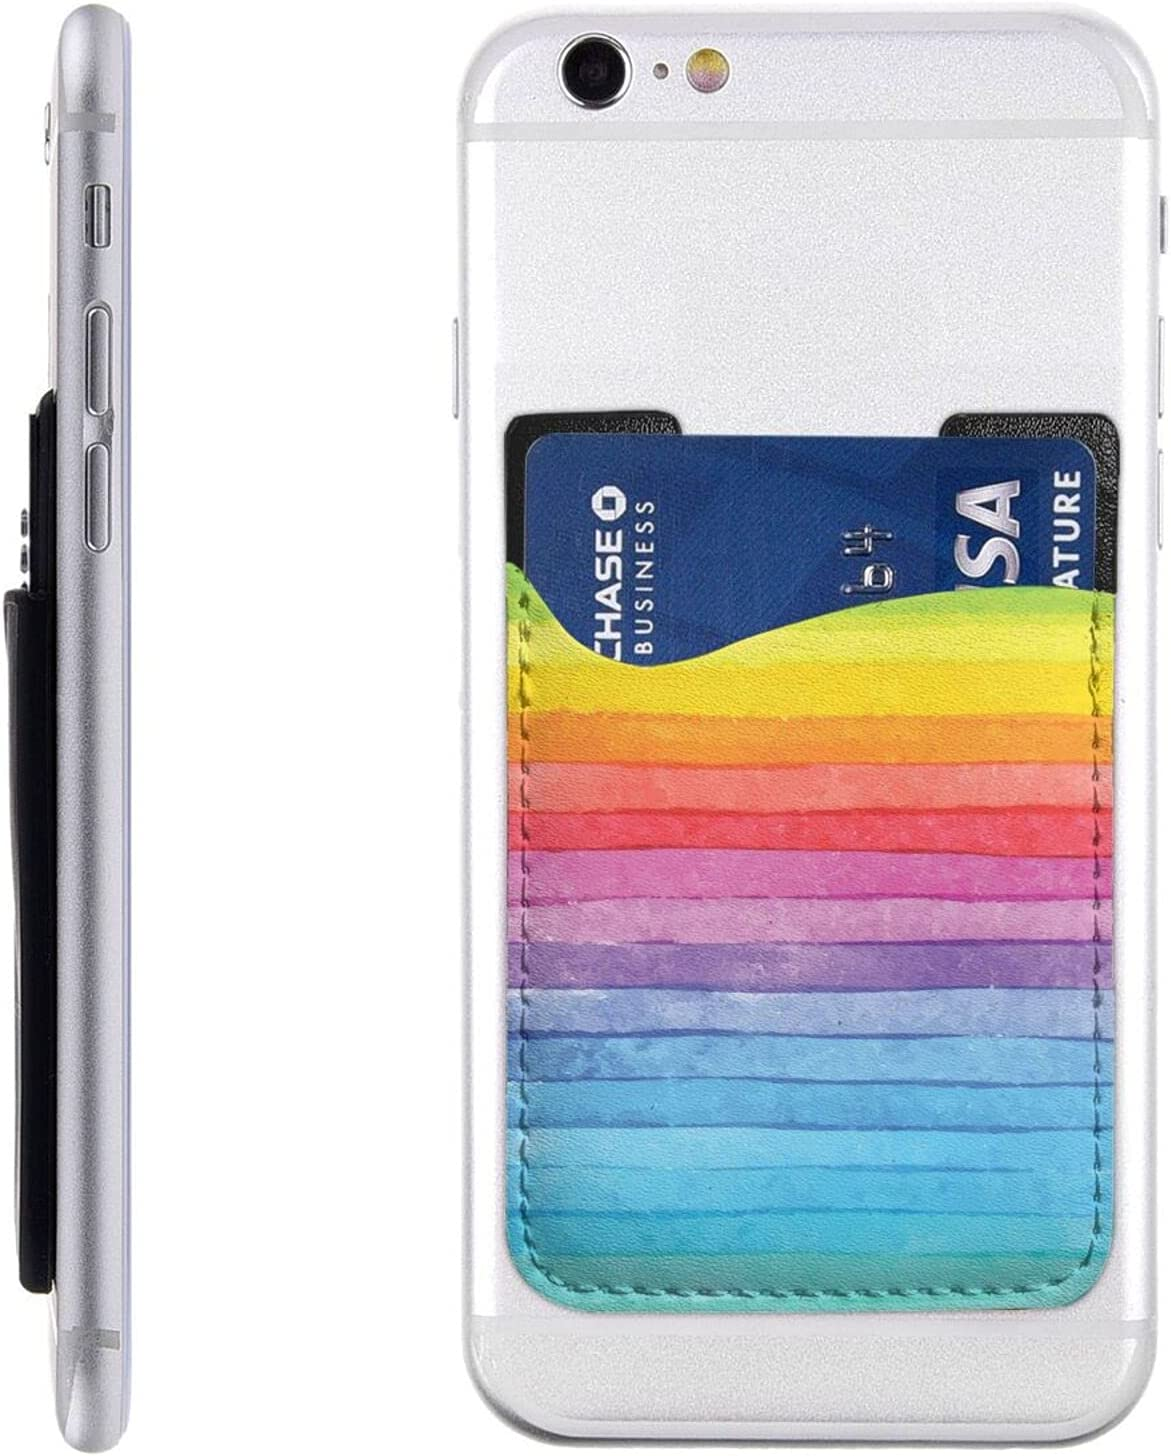 Max 52% Deluxe OFF Rainbow Colored Striped Phone Card Holder On Ca Cell Stick